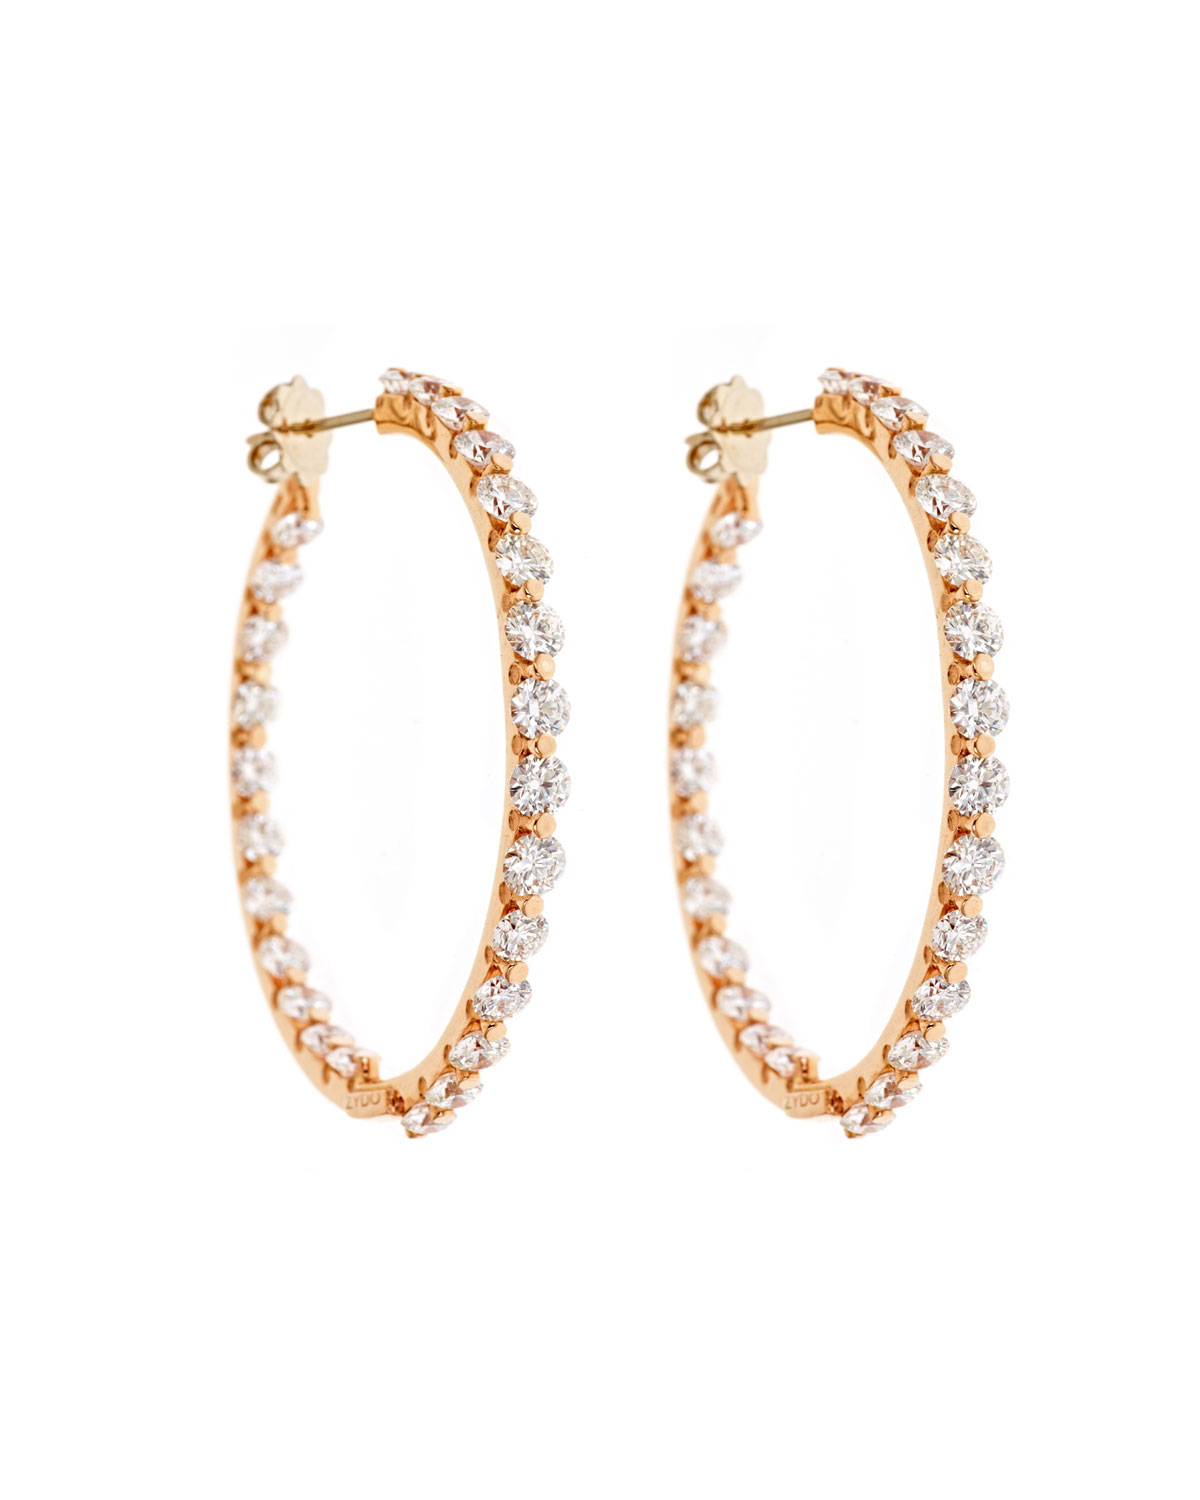 Clic Chic 18k Rose Gold Diamond Hoop Earrings